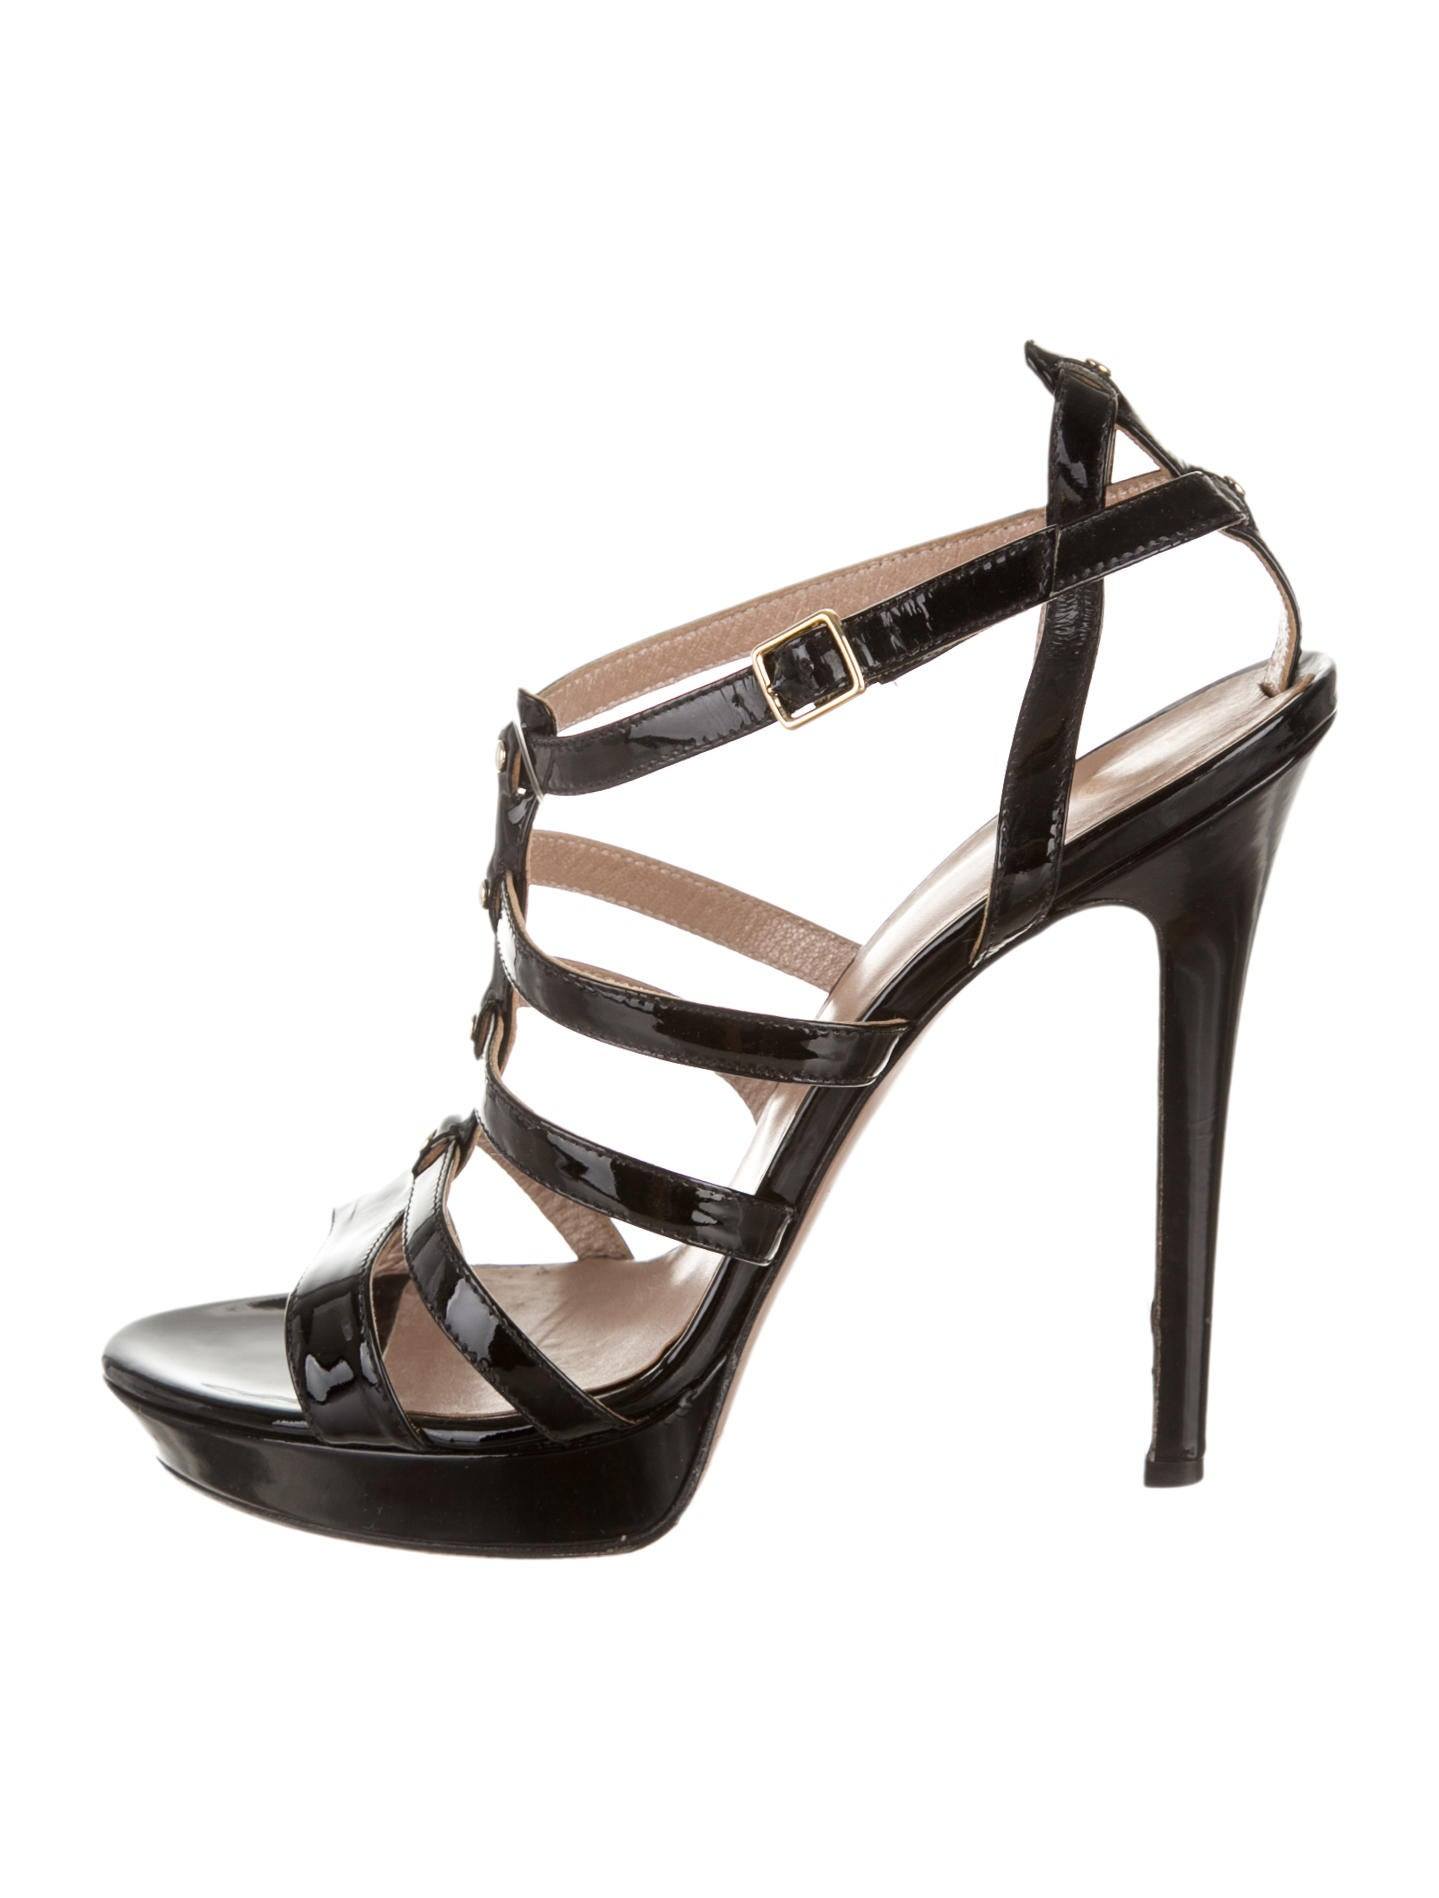 Versace Sandals - Shoes - VES23009 | The RealReal